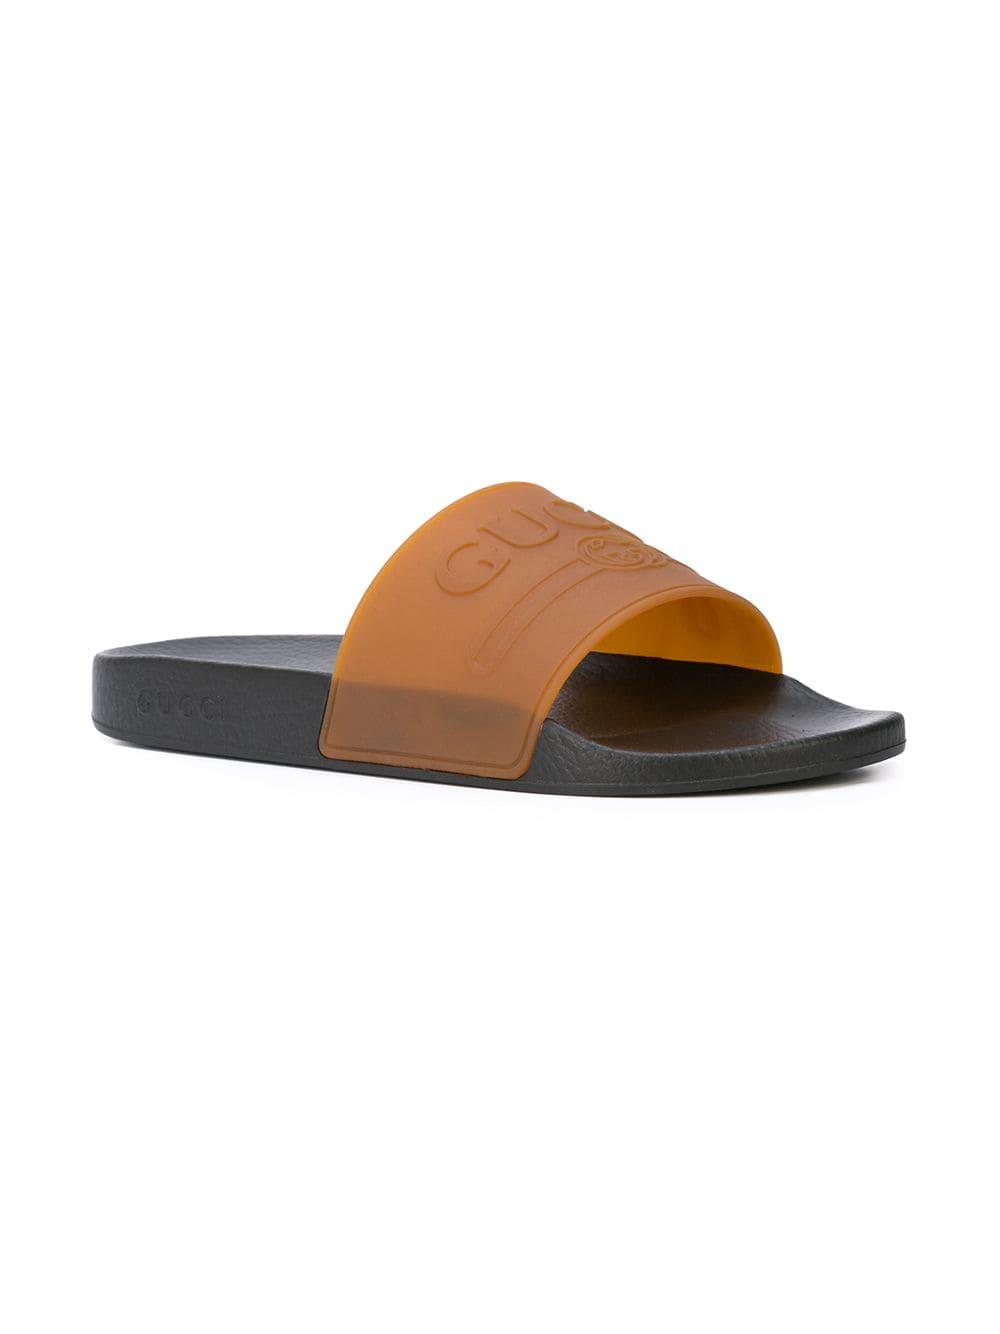 b3f02915034 Lyst - Gucci Logo Slides in Brown for Men